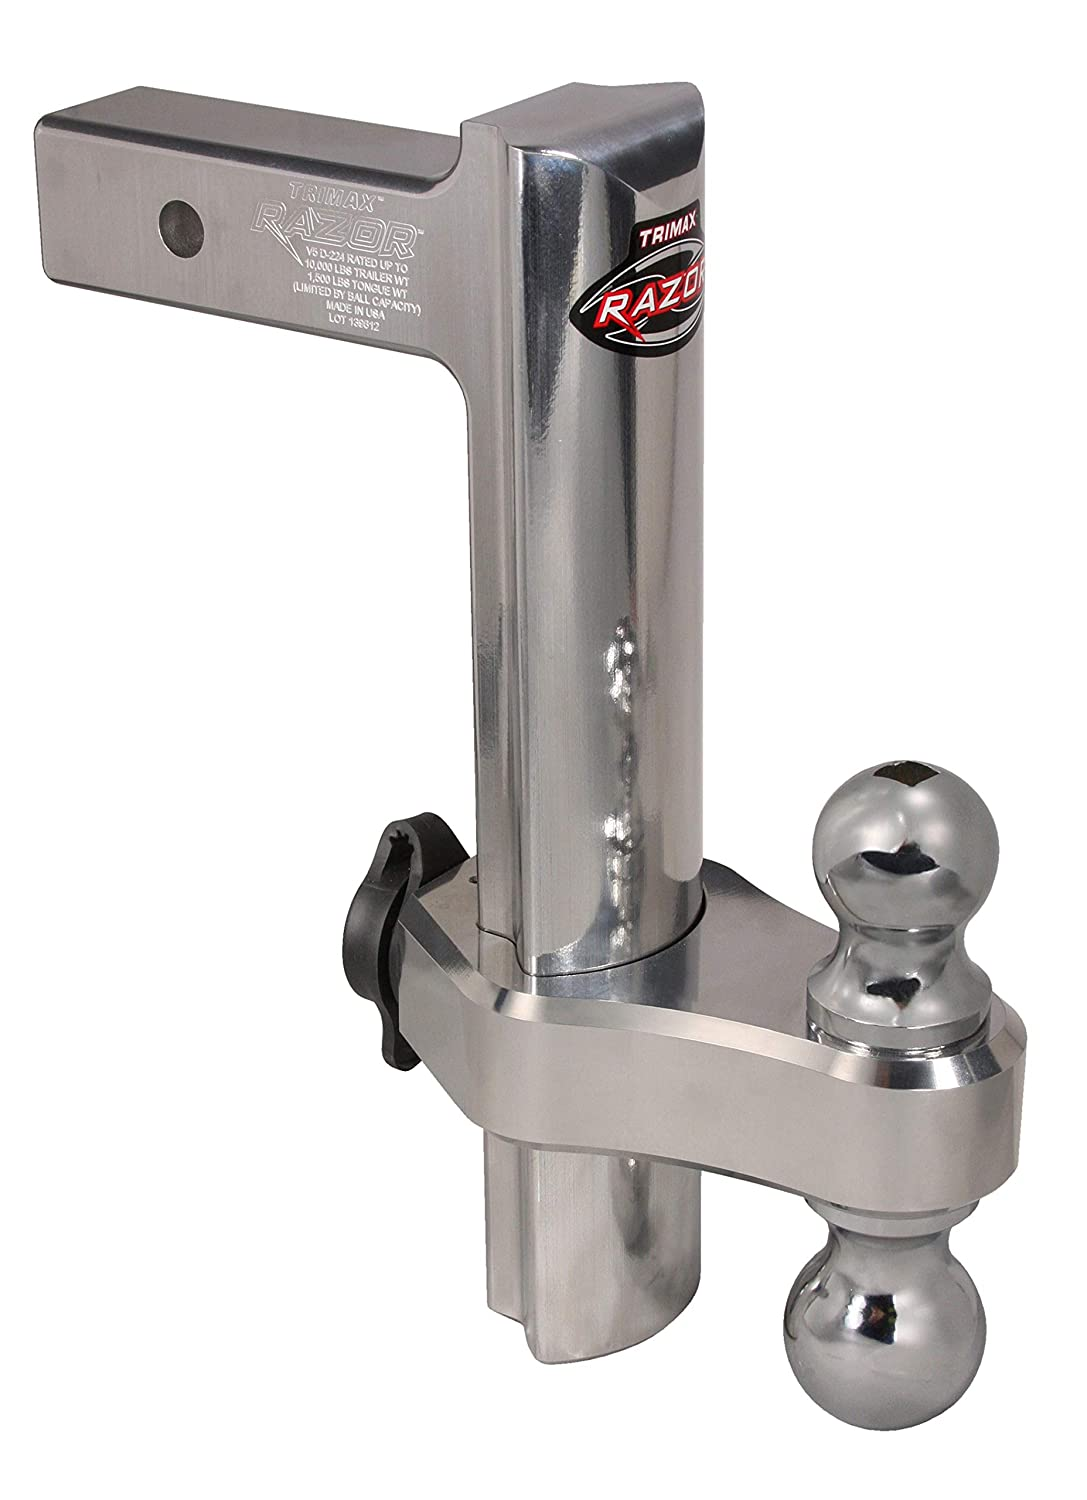 Trimax TRZ12AL 12 Premium Aluminum Adjustable Hitch with Dual Hitch Ball and T3 Receiver Lock